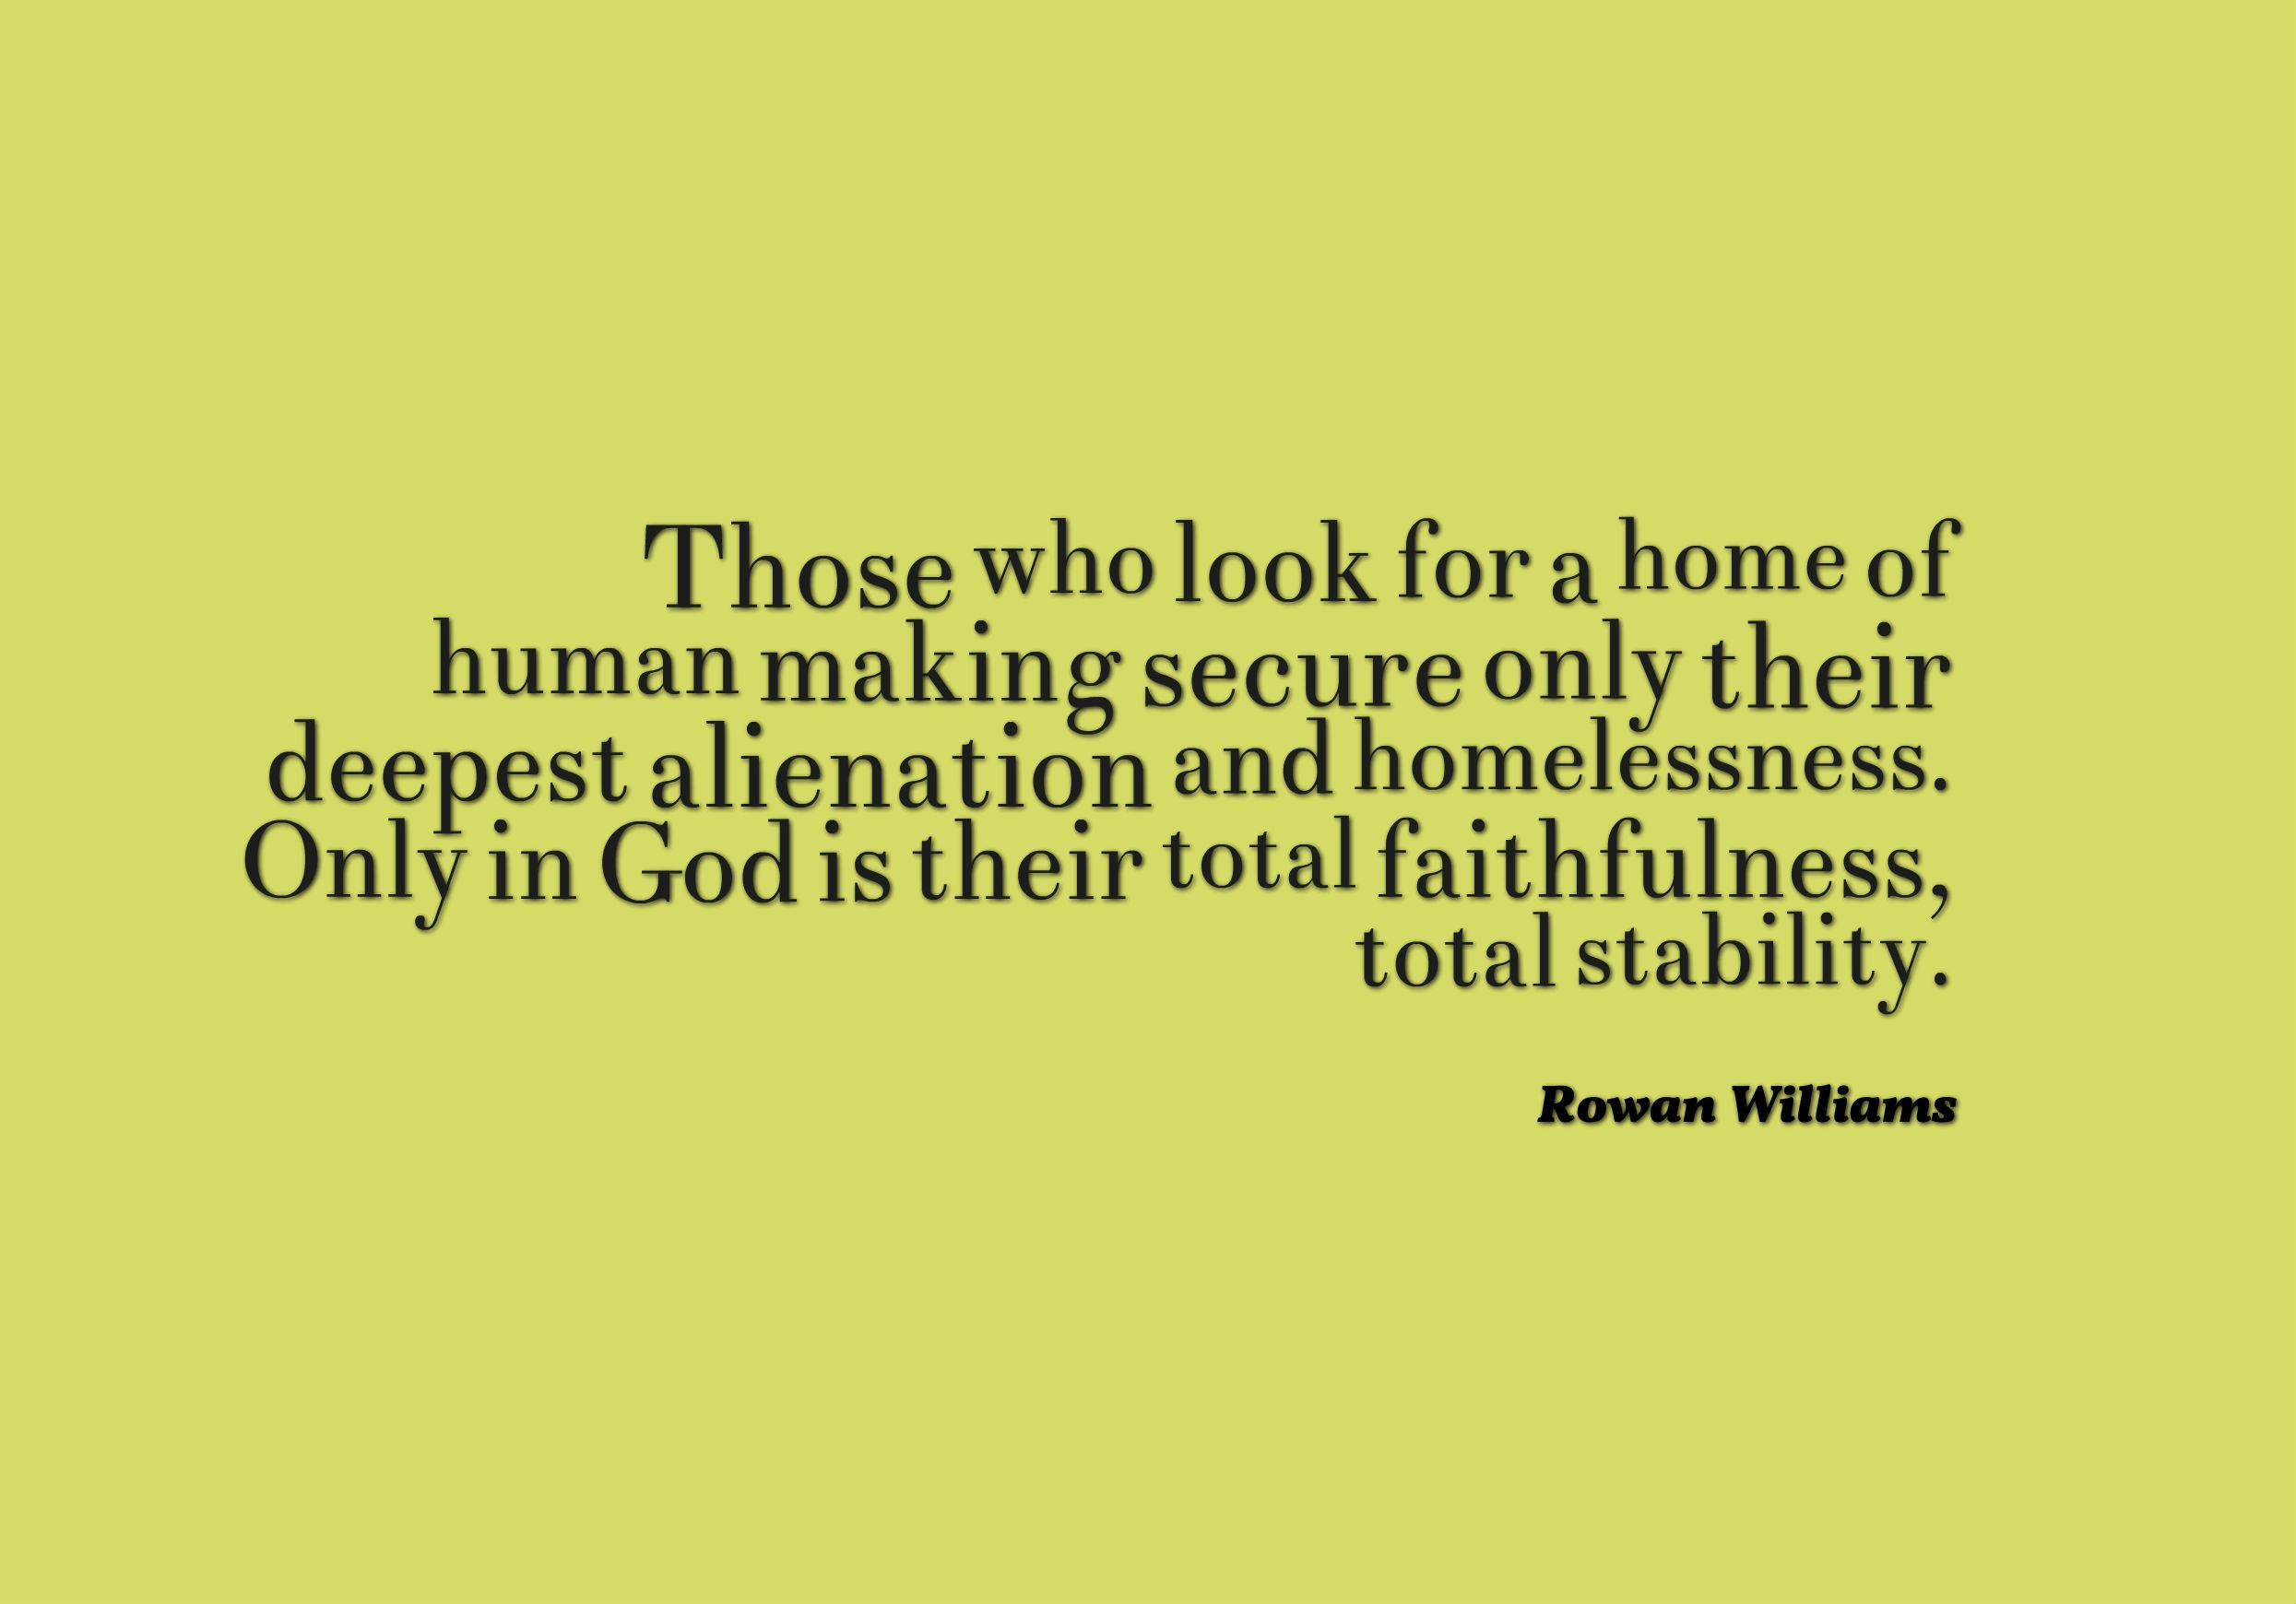 Quotes About Homelessness Those Who Look For A Home Of Human Making Secure Only Their